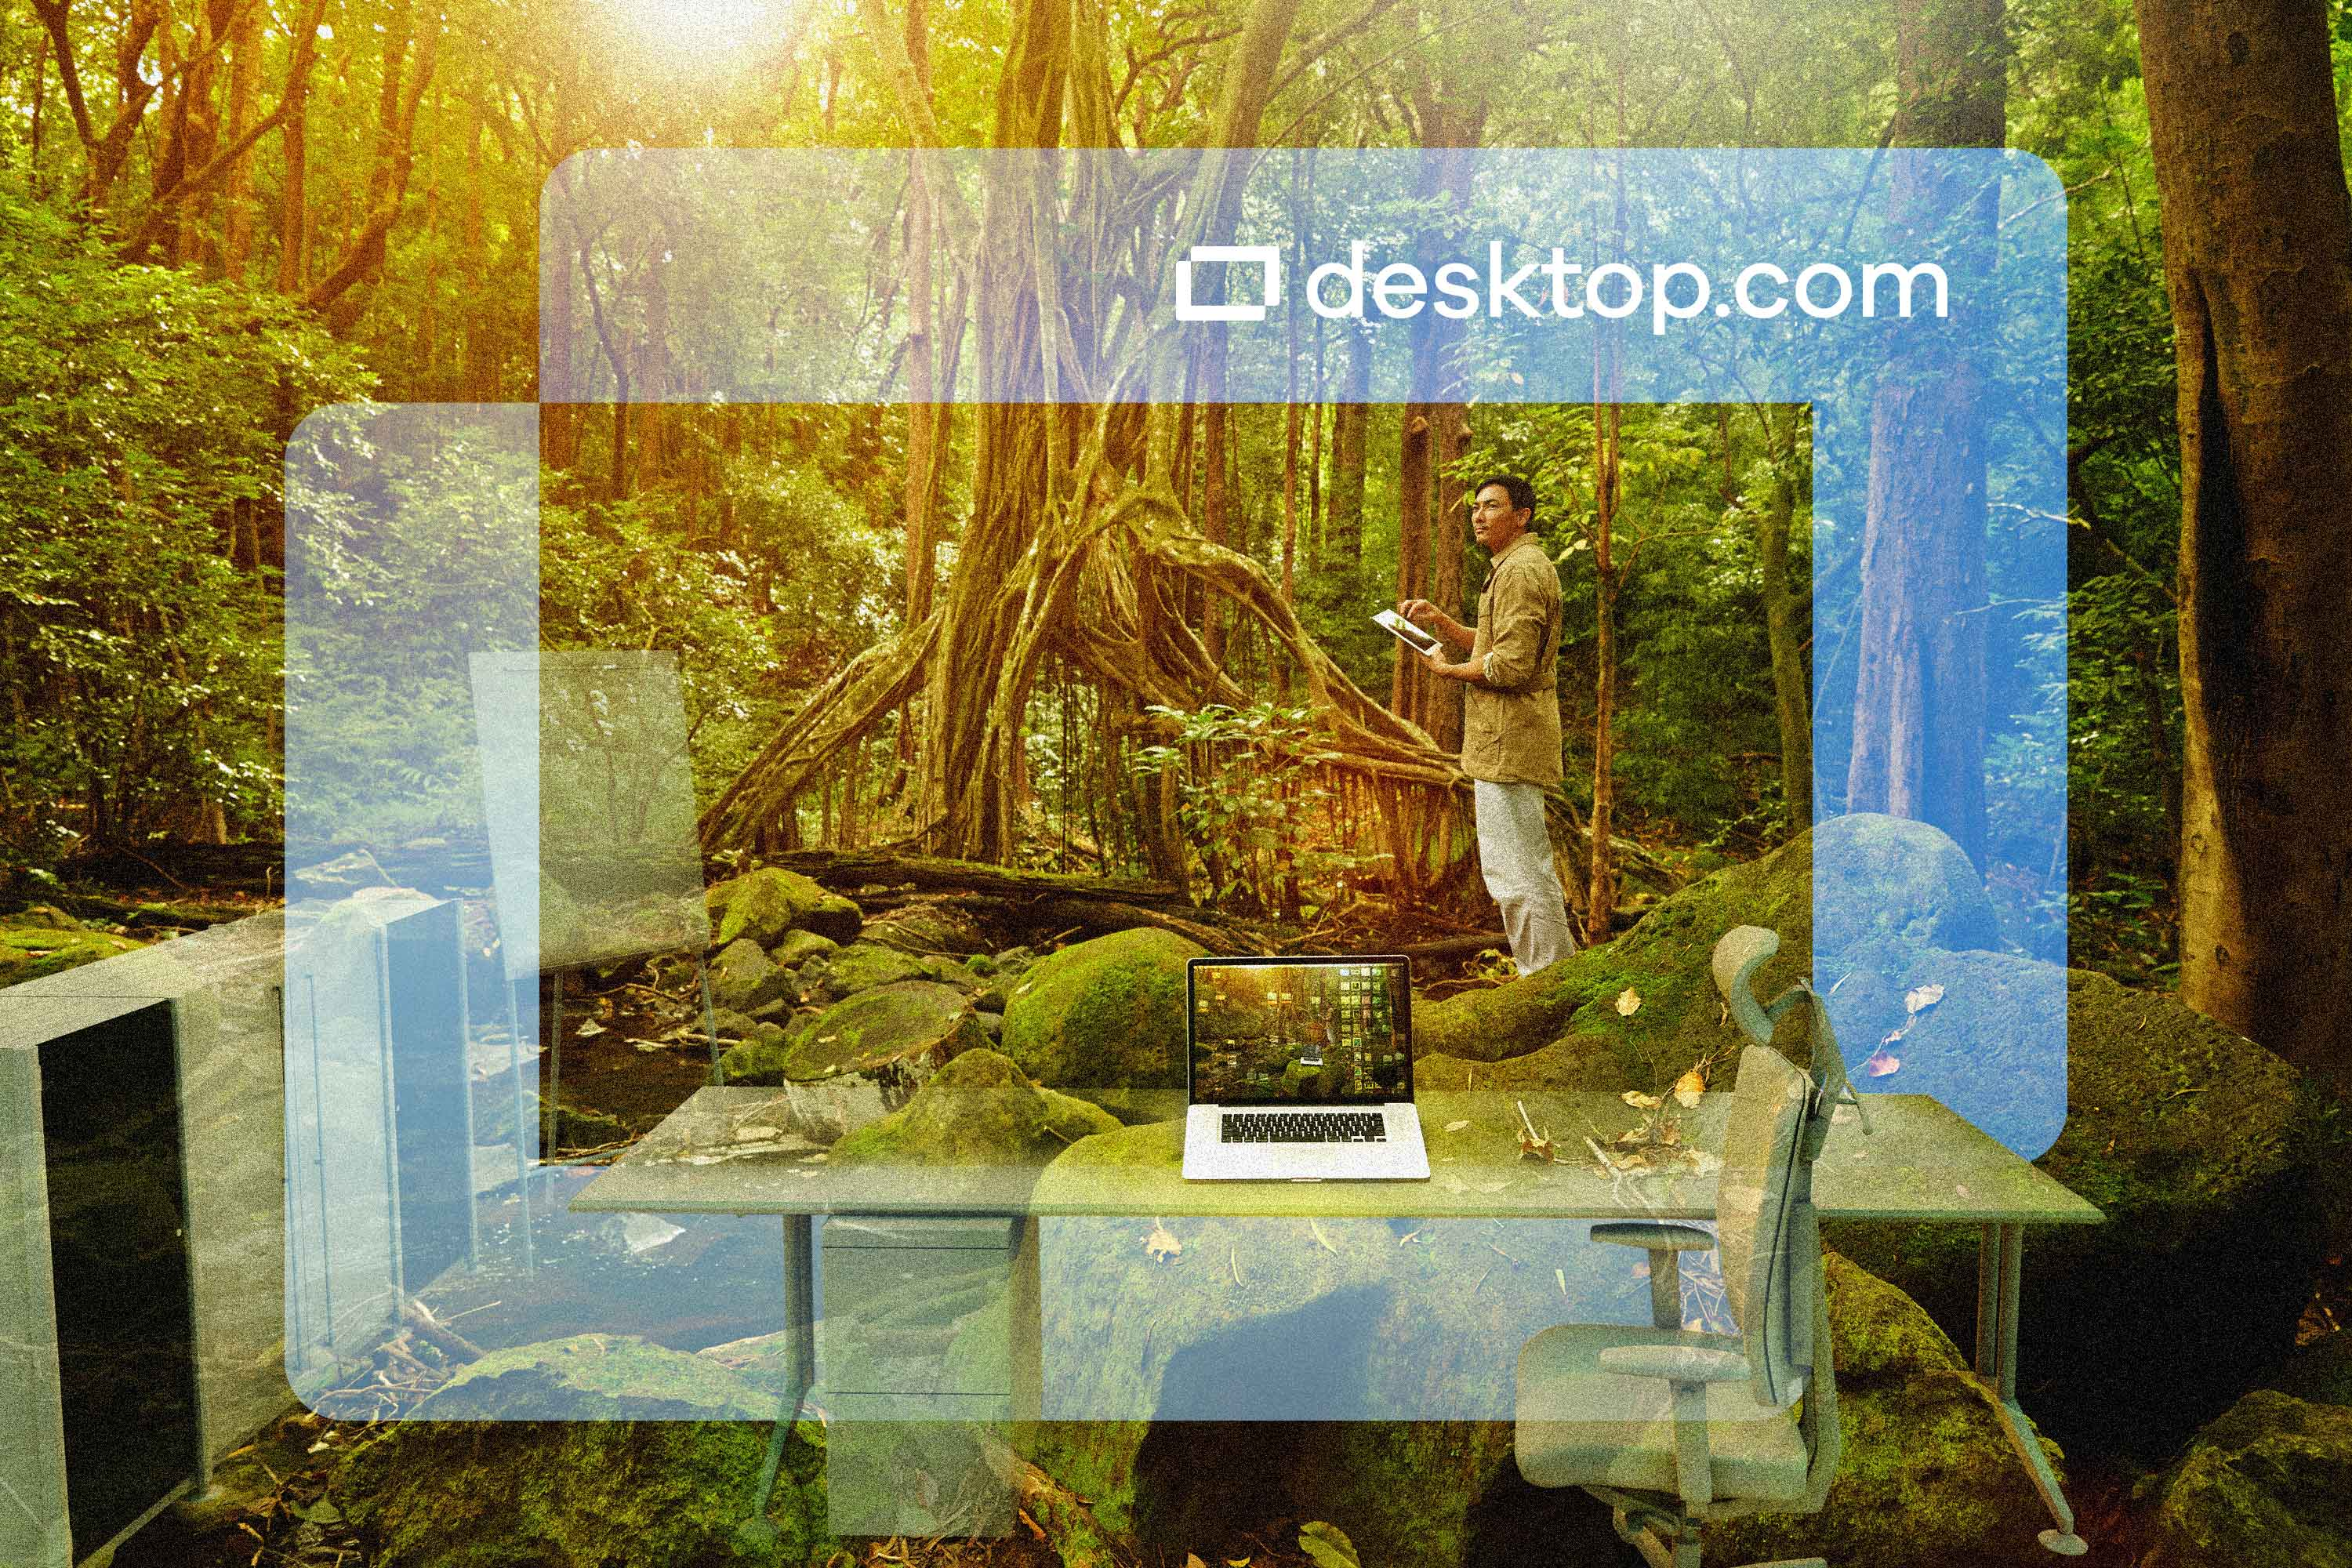 Man stands in a rainforest with an office superimposed in the foreground